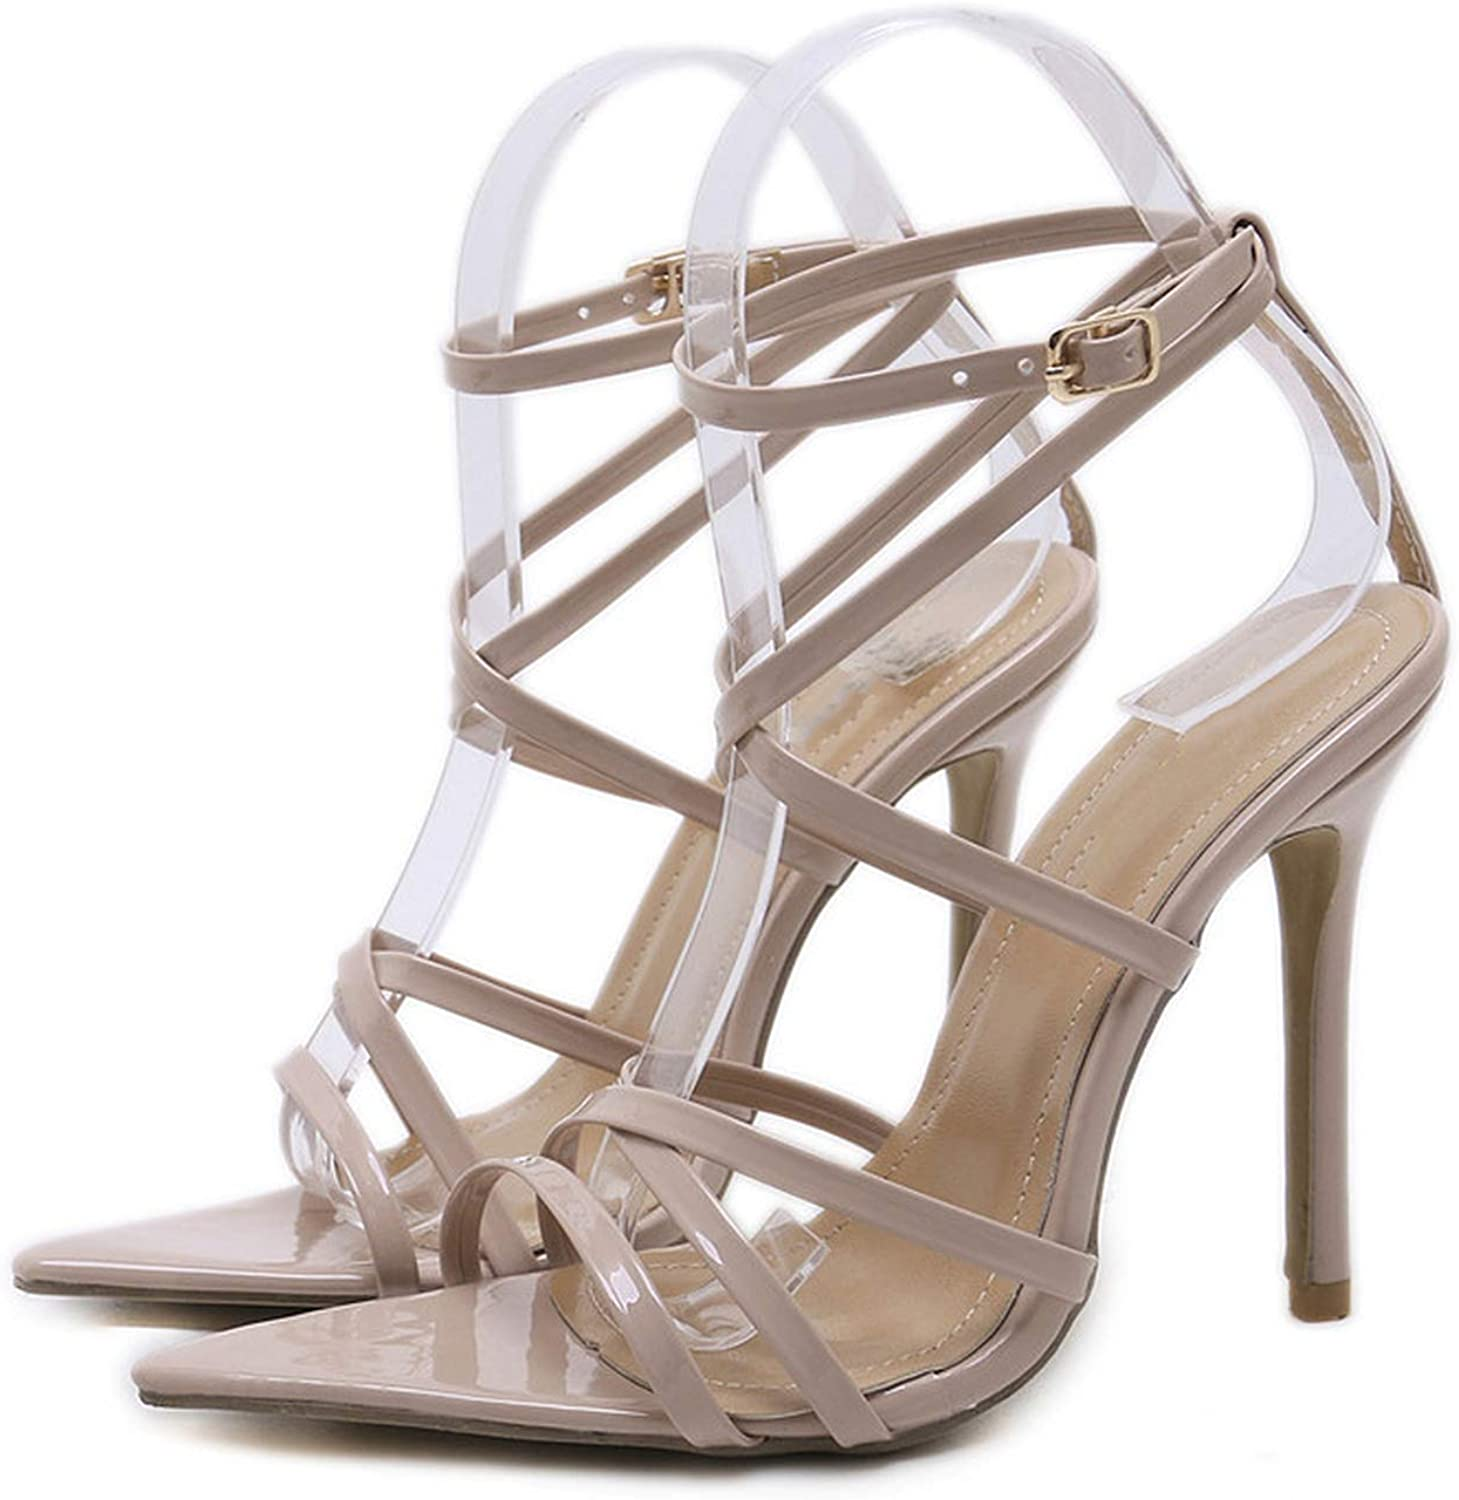 Women Sandals Sexy Cross Strap Buckle high Heels Gladiator Party shoes